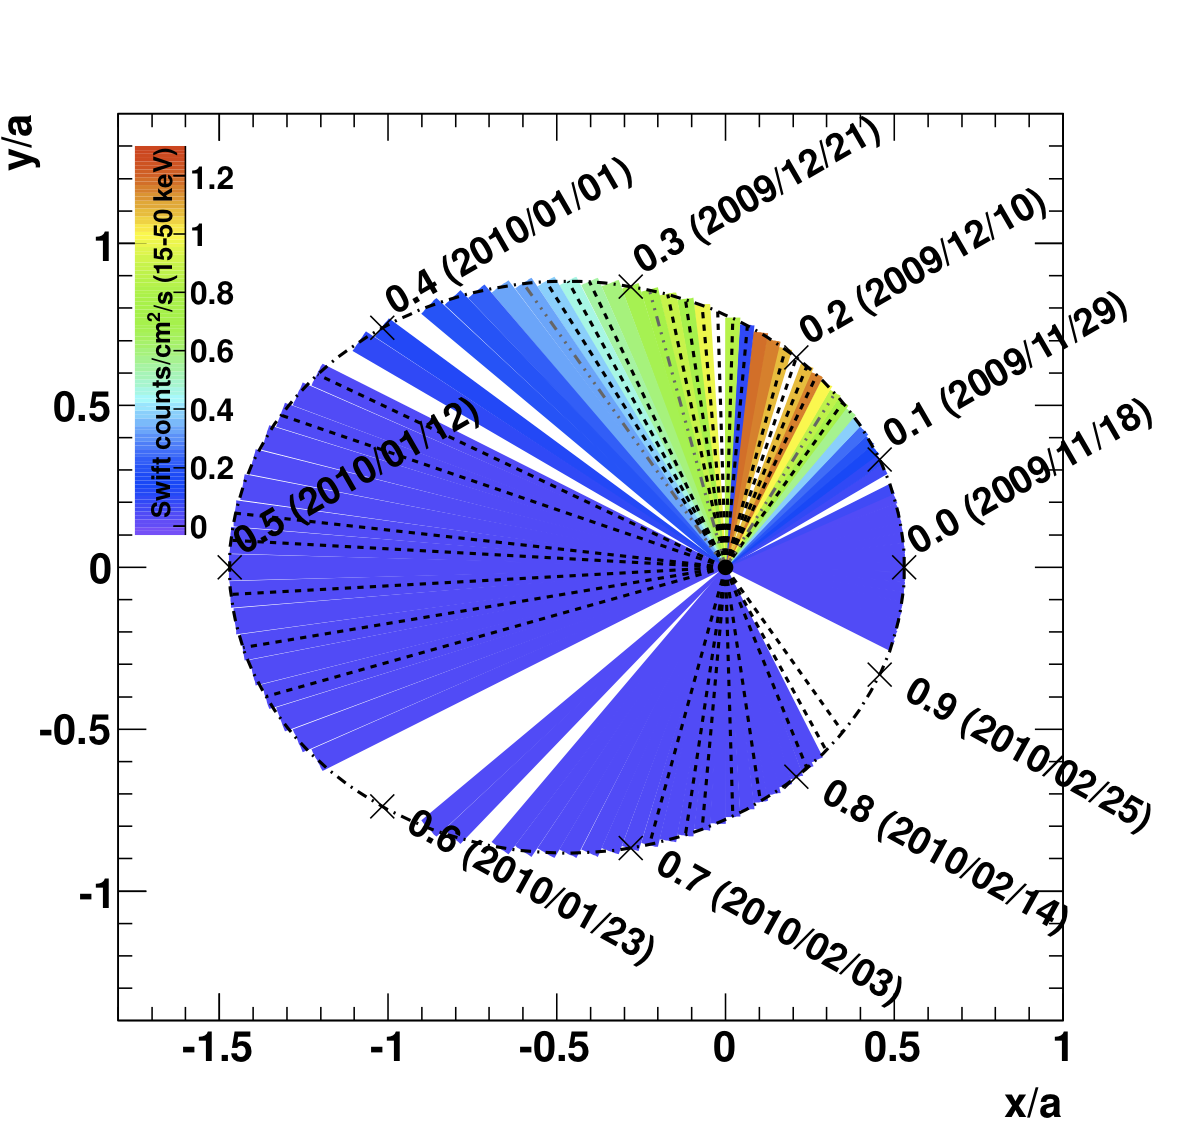 Gamma-ray observations of the Be/pulsar binary 1A0535+262 during a giant X-ray outburst - Relative orbit of the neutron star around the Be star (click through to read full caption)     (Reference: V. A. Acciari et al. (The VERITAS Collaboration), Astrophysical Journal 733: 96, 2011)